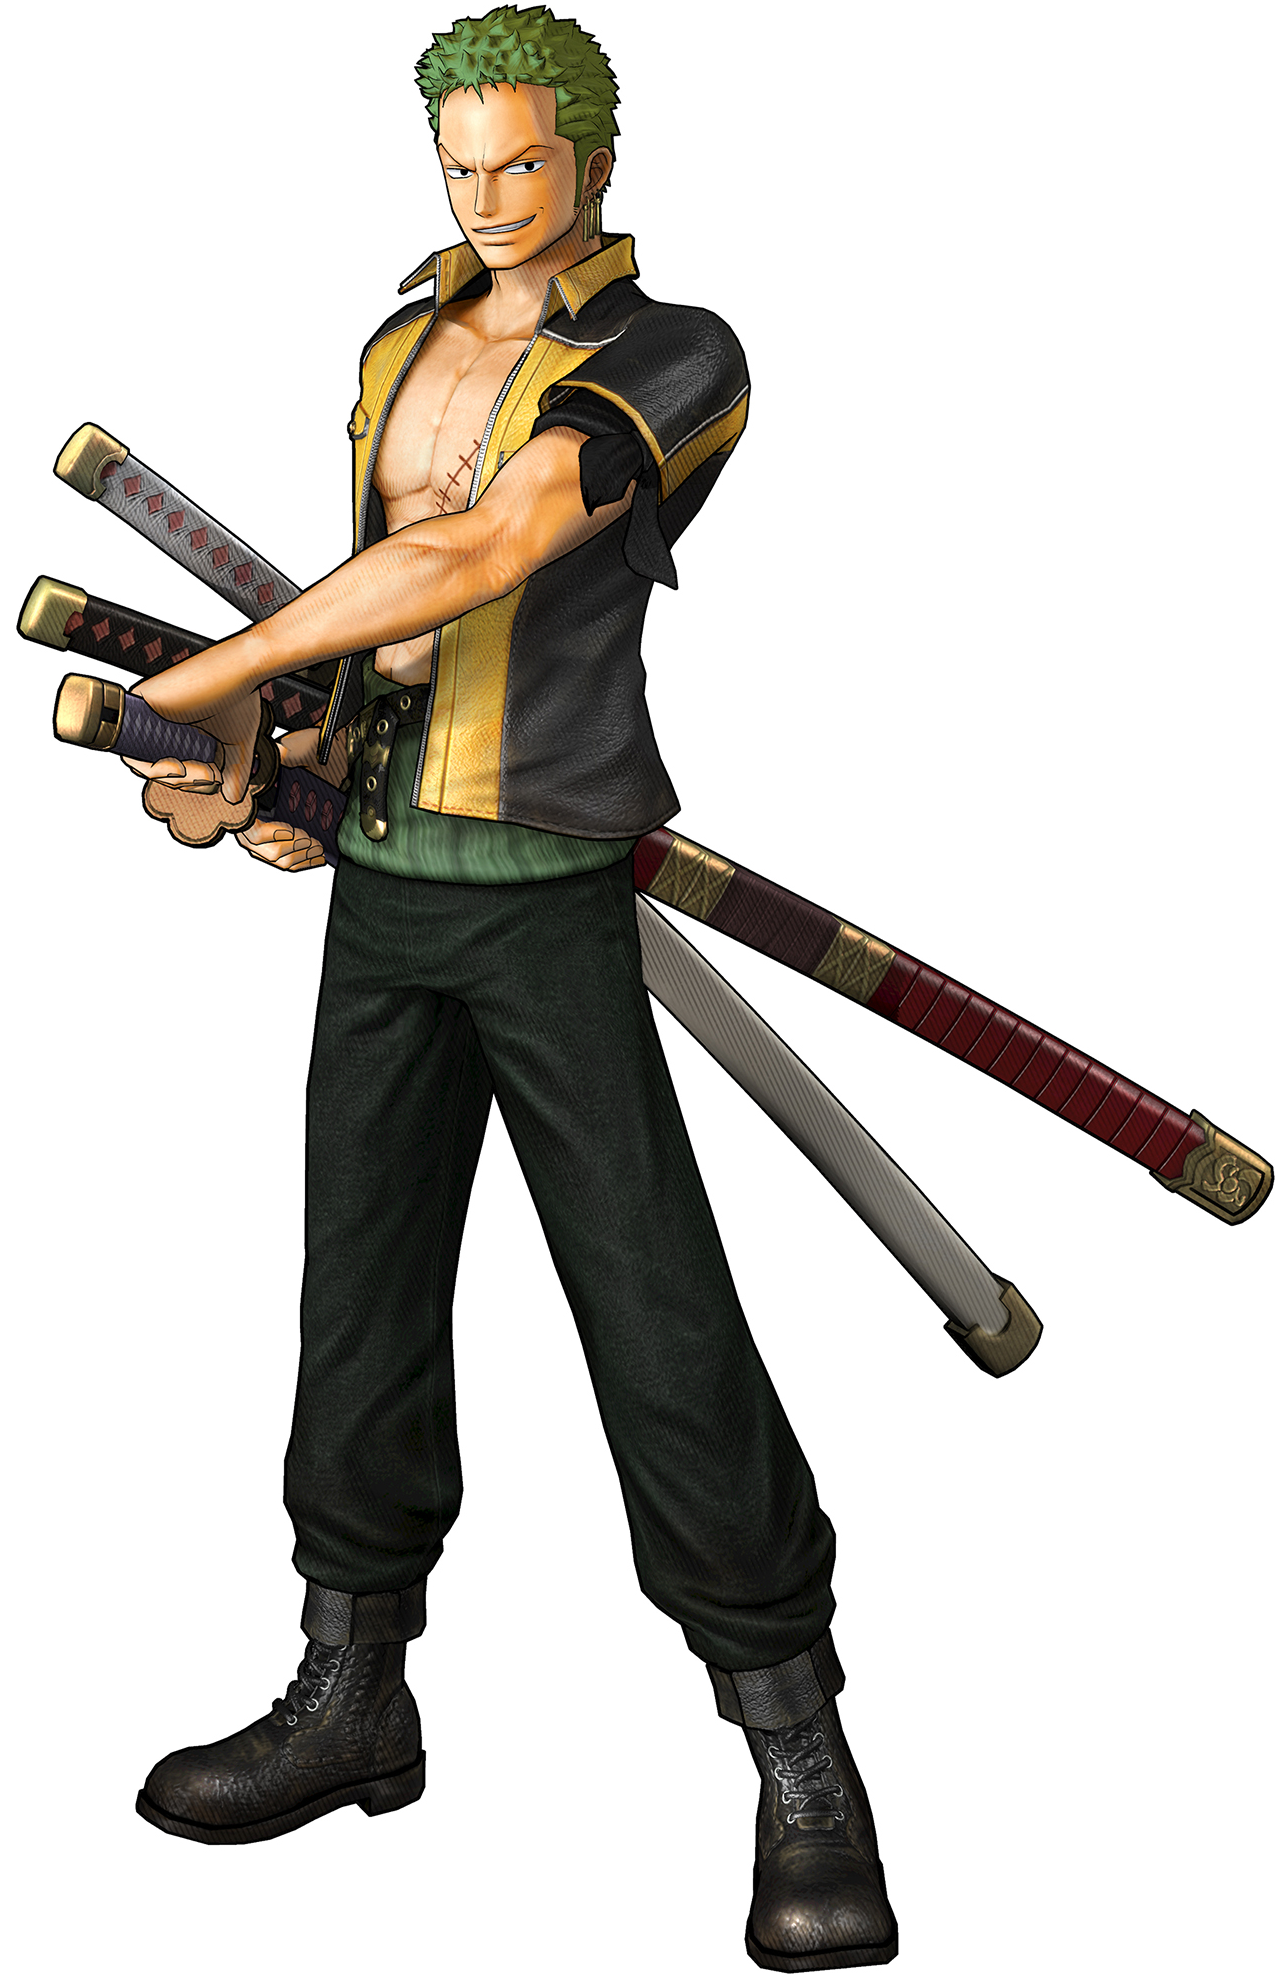 Image zoro pre timeskip pirate warriors one piece wiki fandom powered by wikia - One piece logo zoro ...